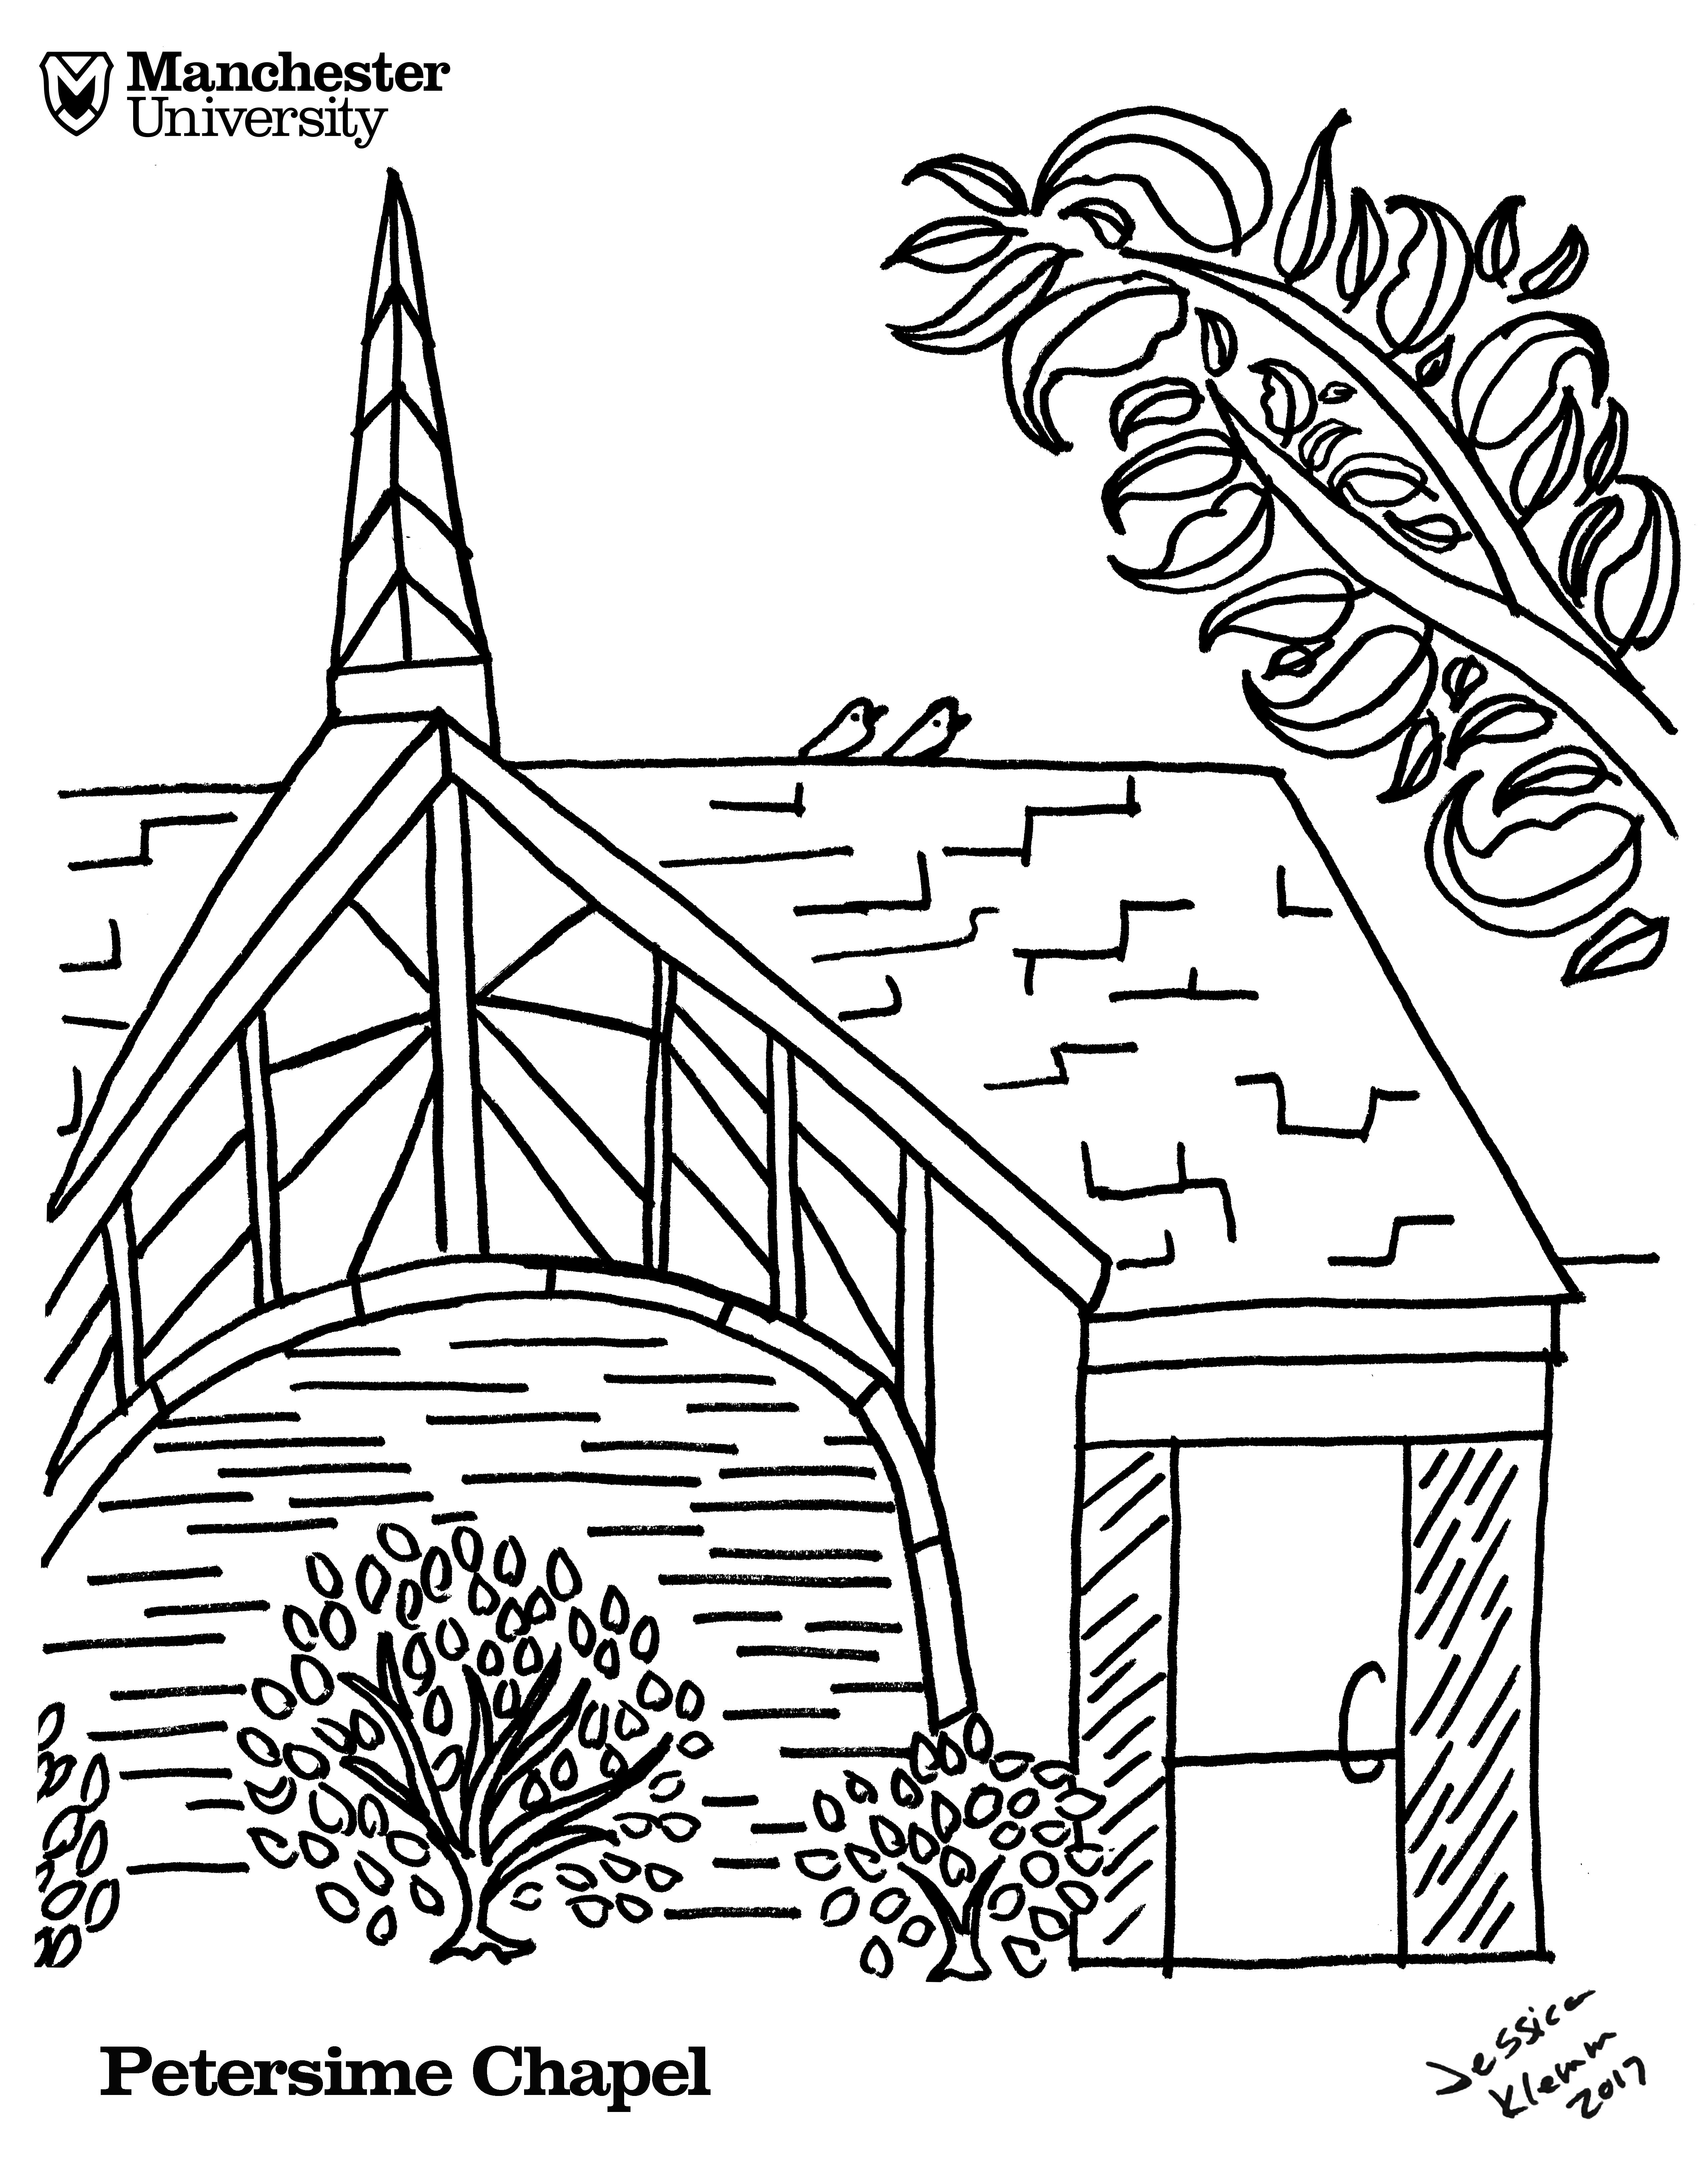 Manchester University Petersime Chapel coloring page - just print ...